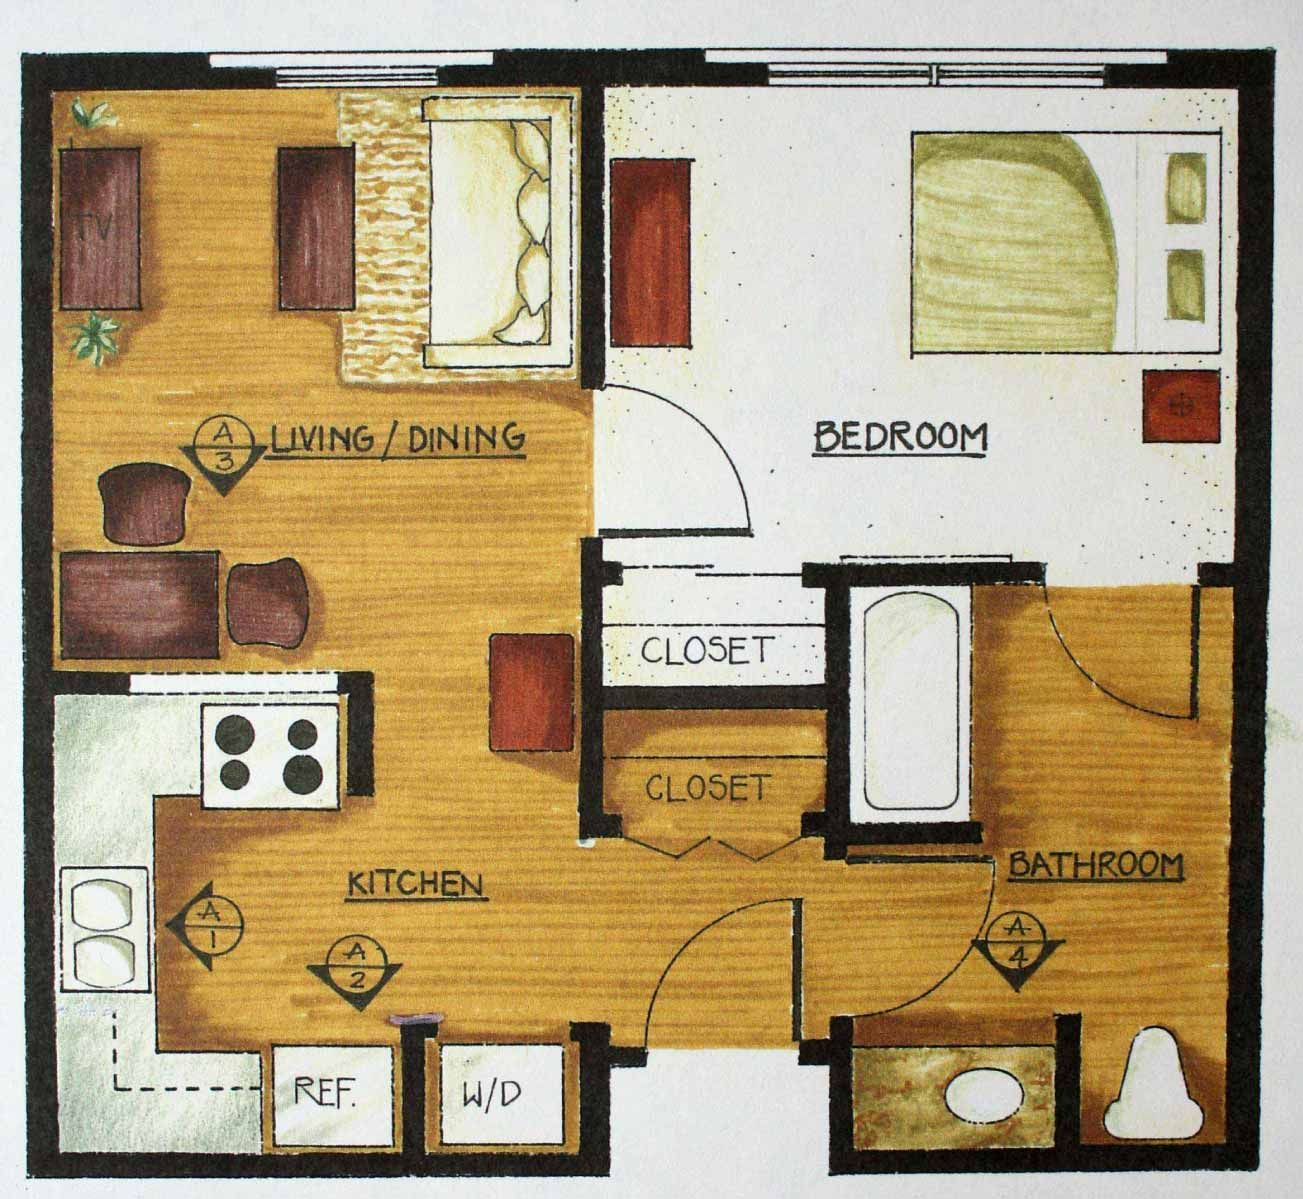 Simple floor plan nice for mother